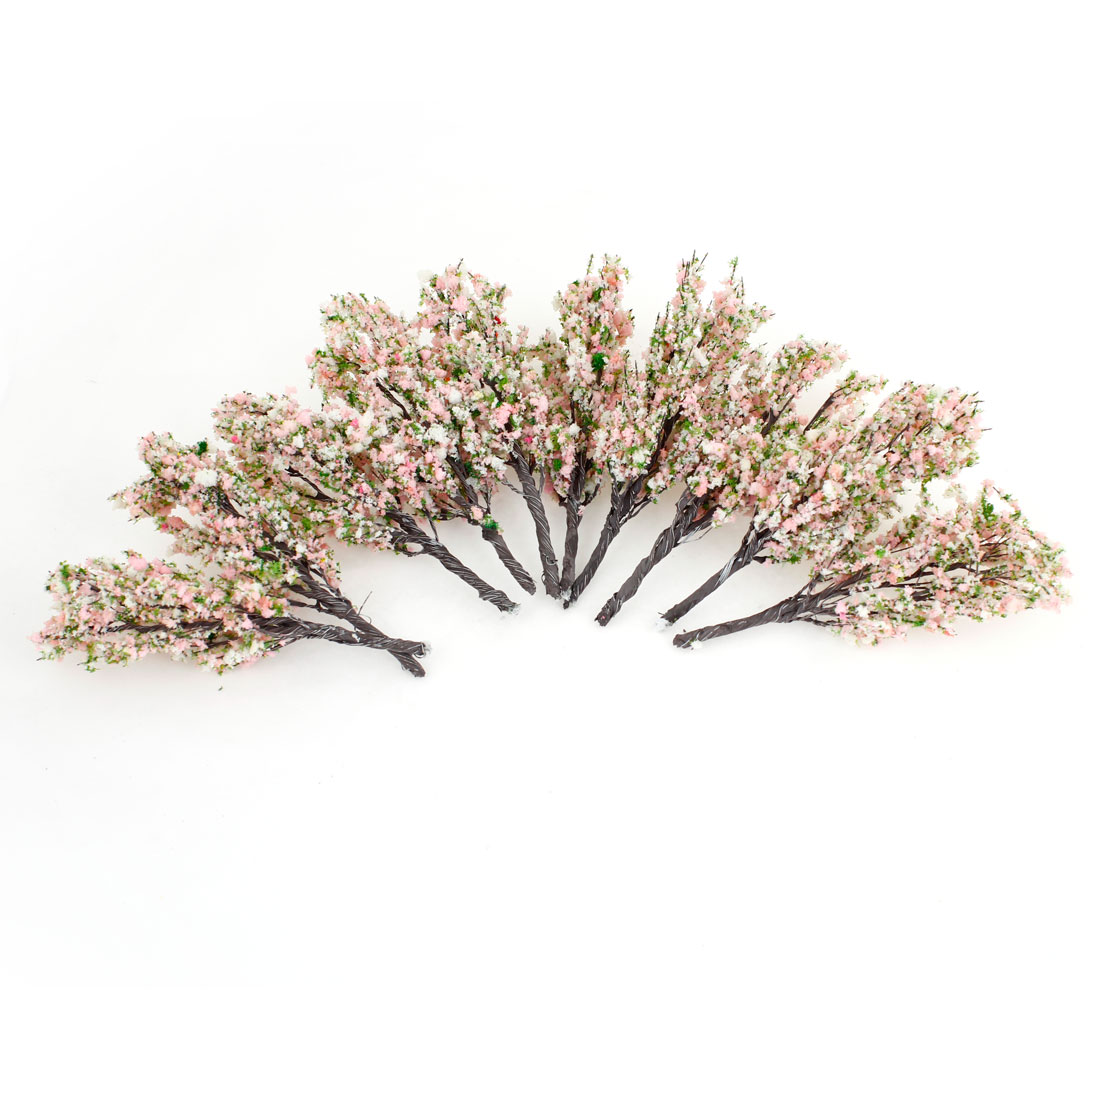 10 Pcs Light Pink White Scenery Model Flower Tree 11.5cm High Scale 1:100